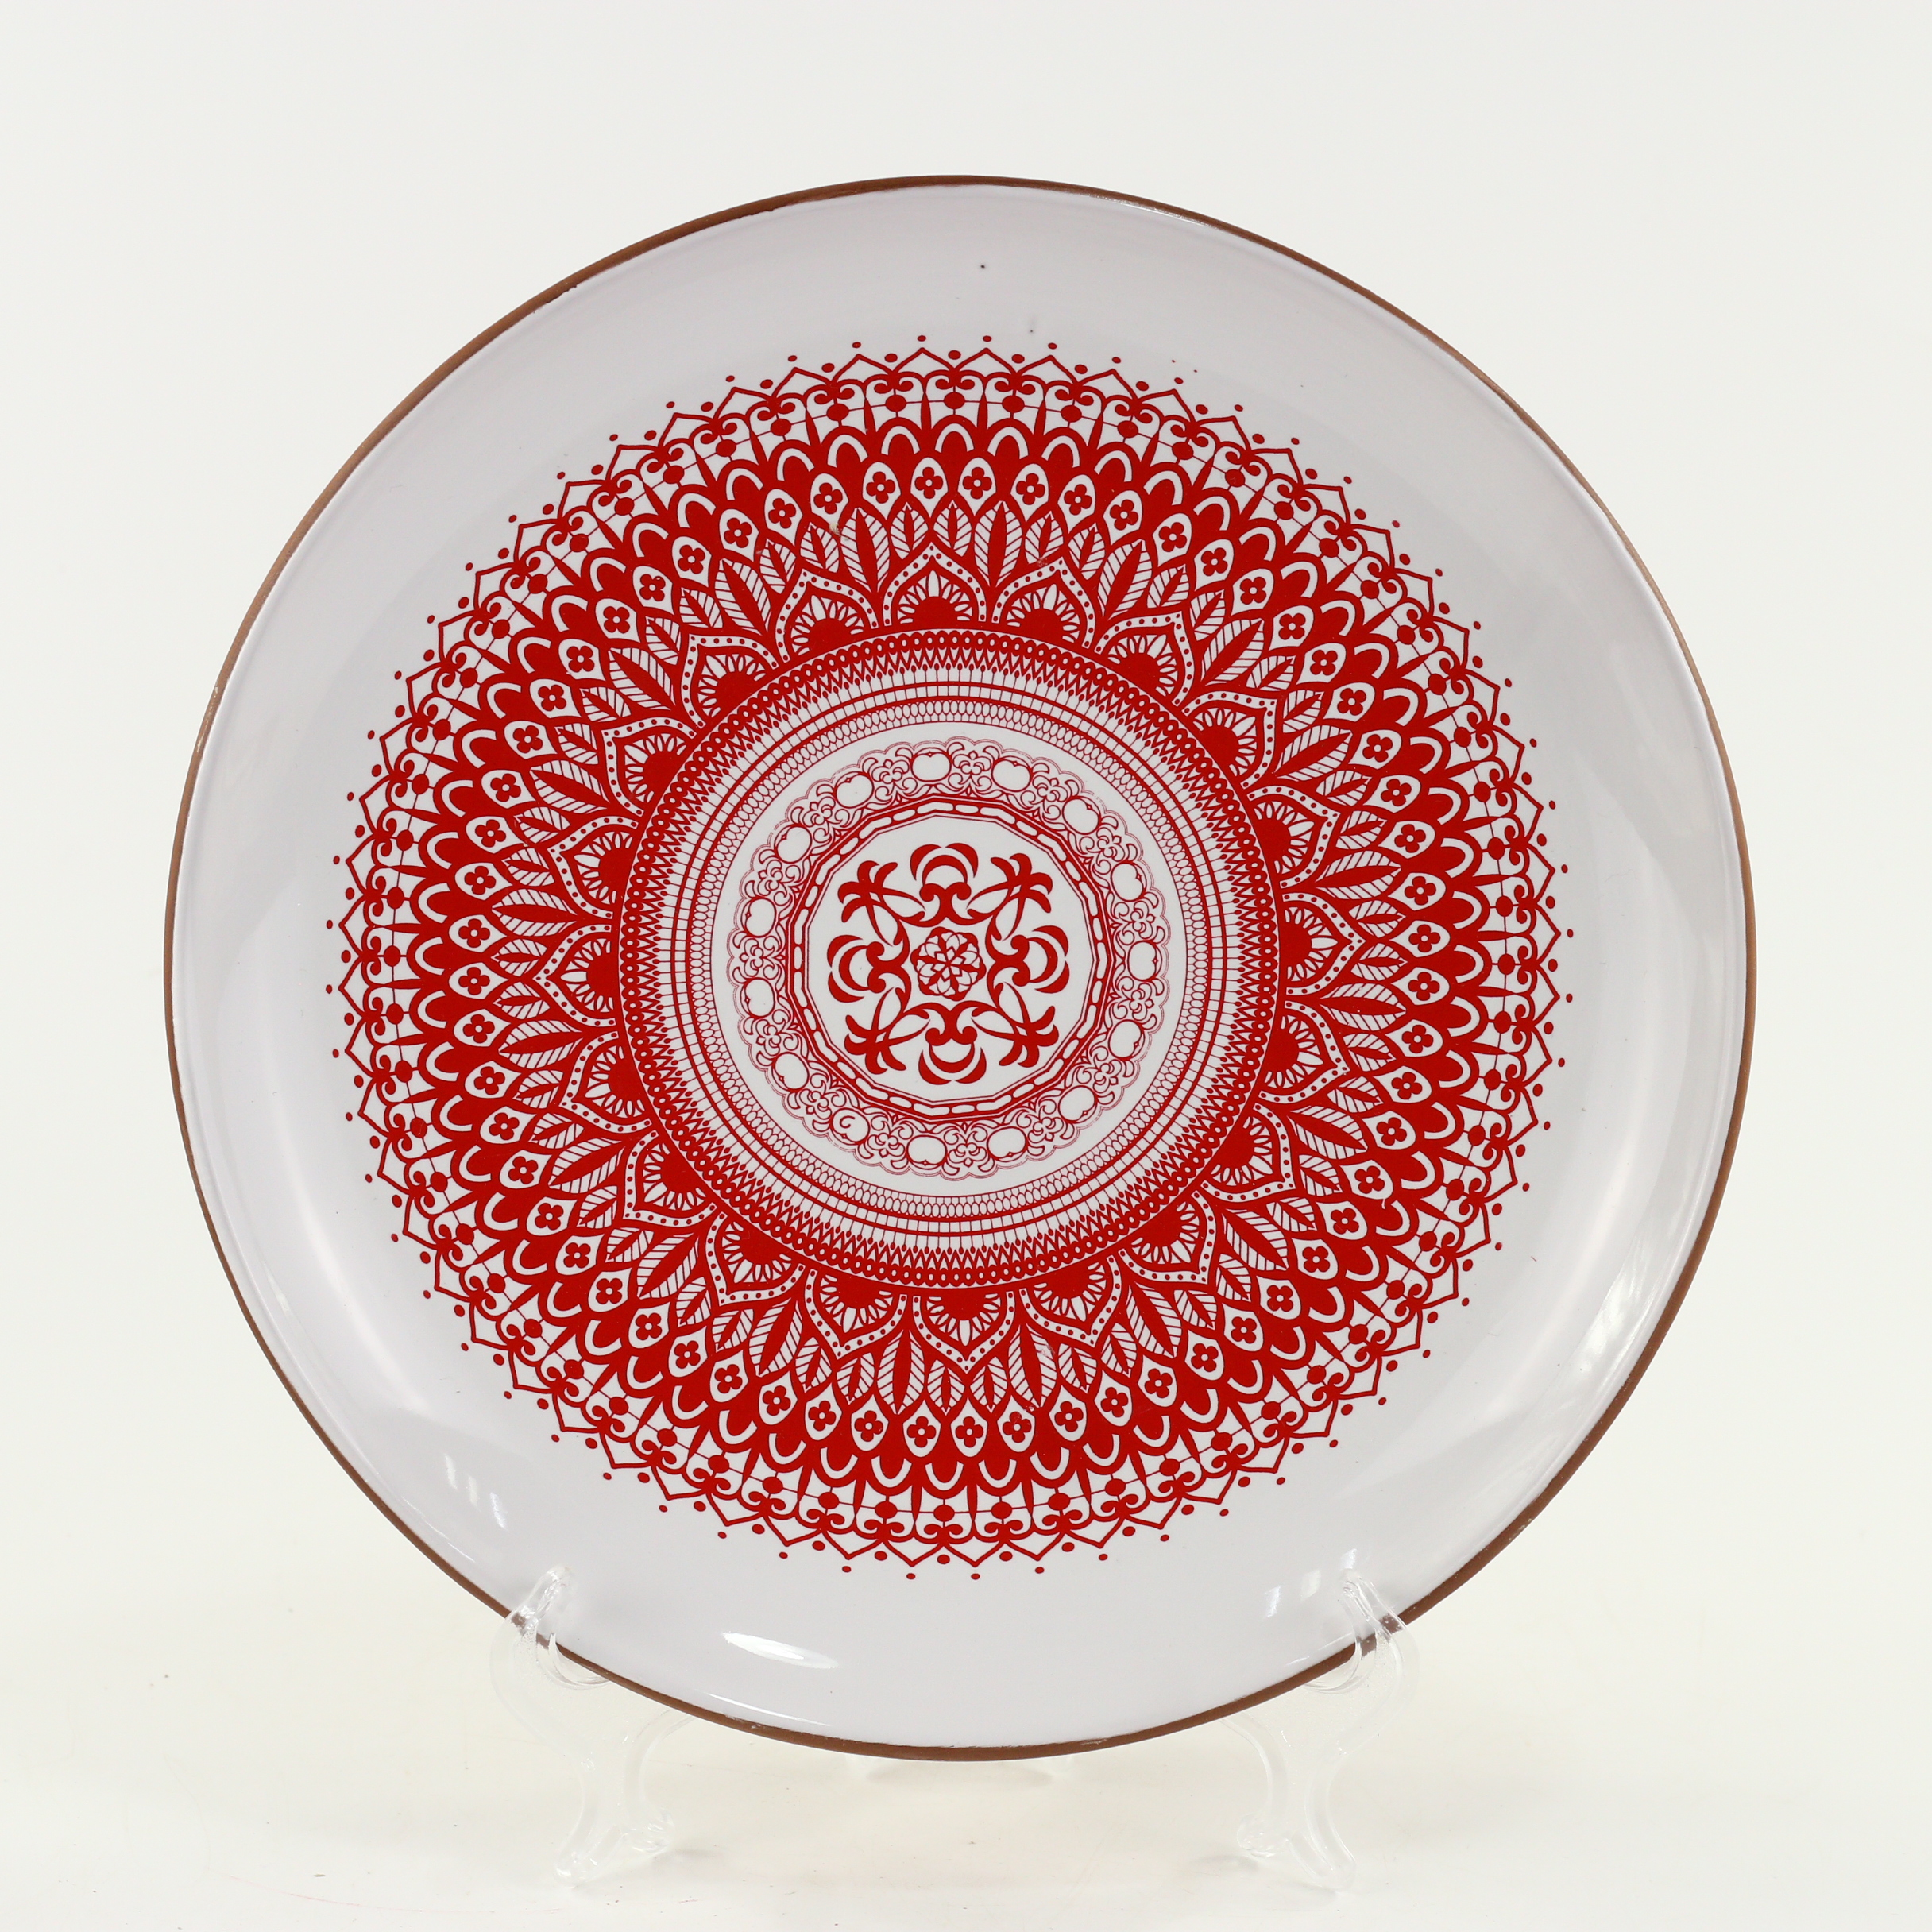 Terracotta Customized Shape or Decal Dish and Plate